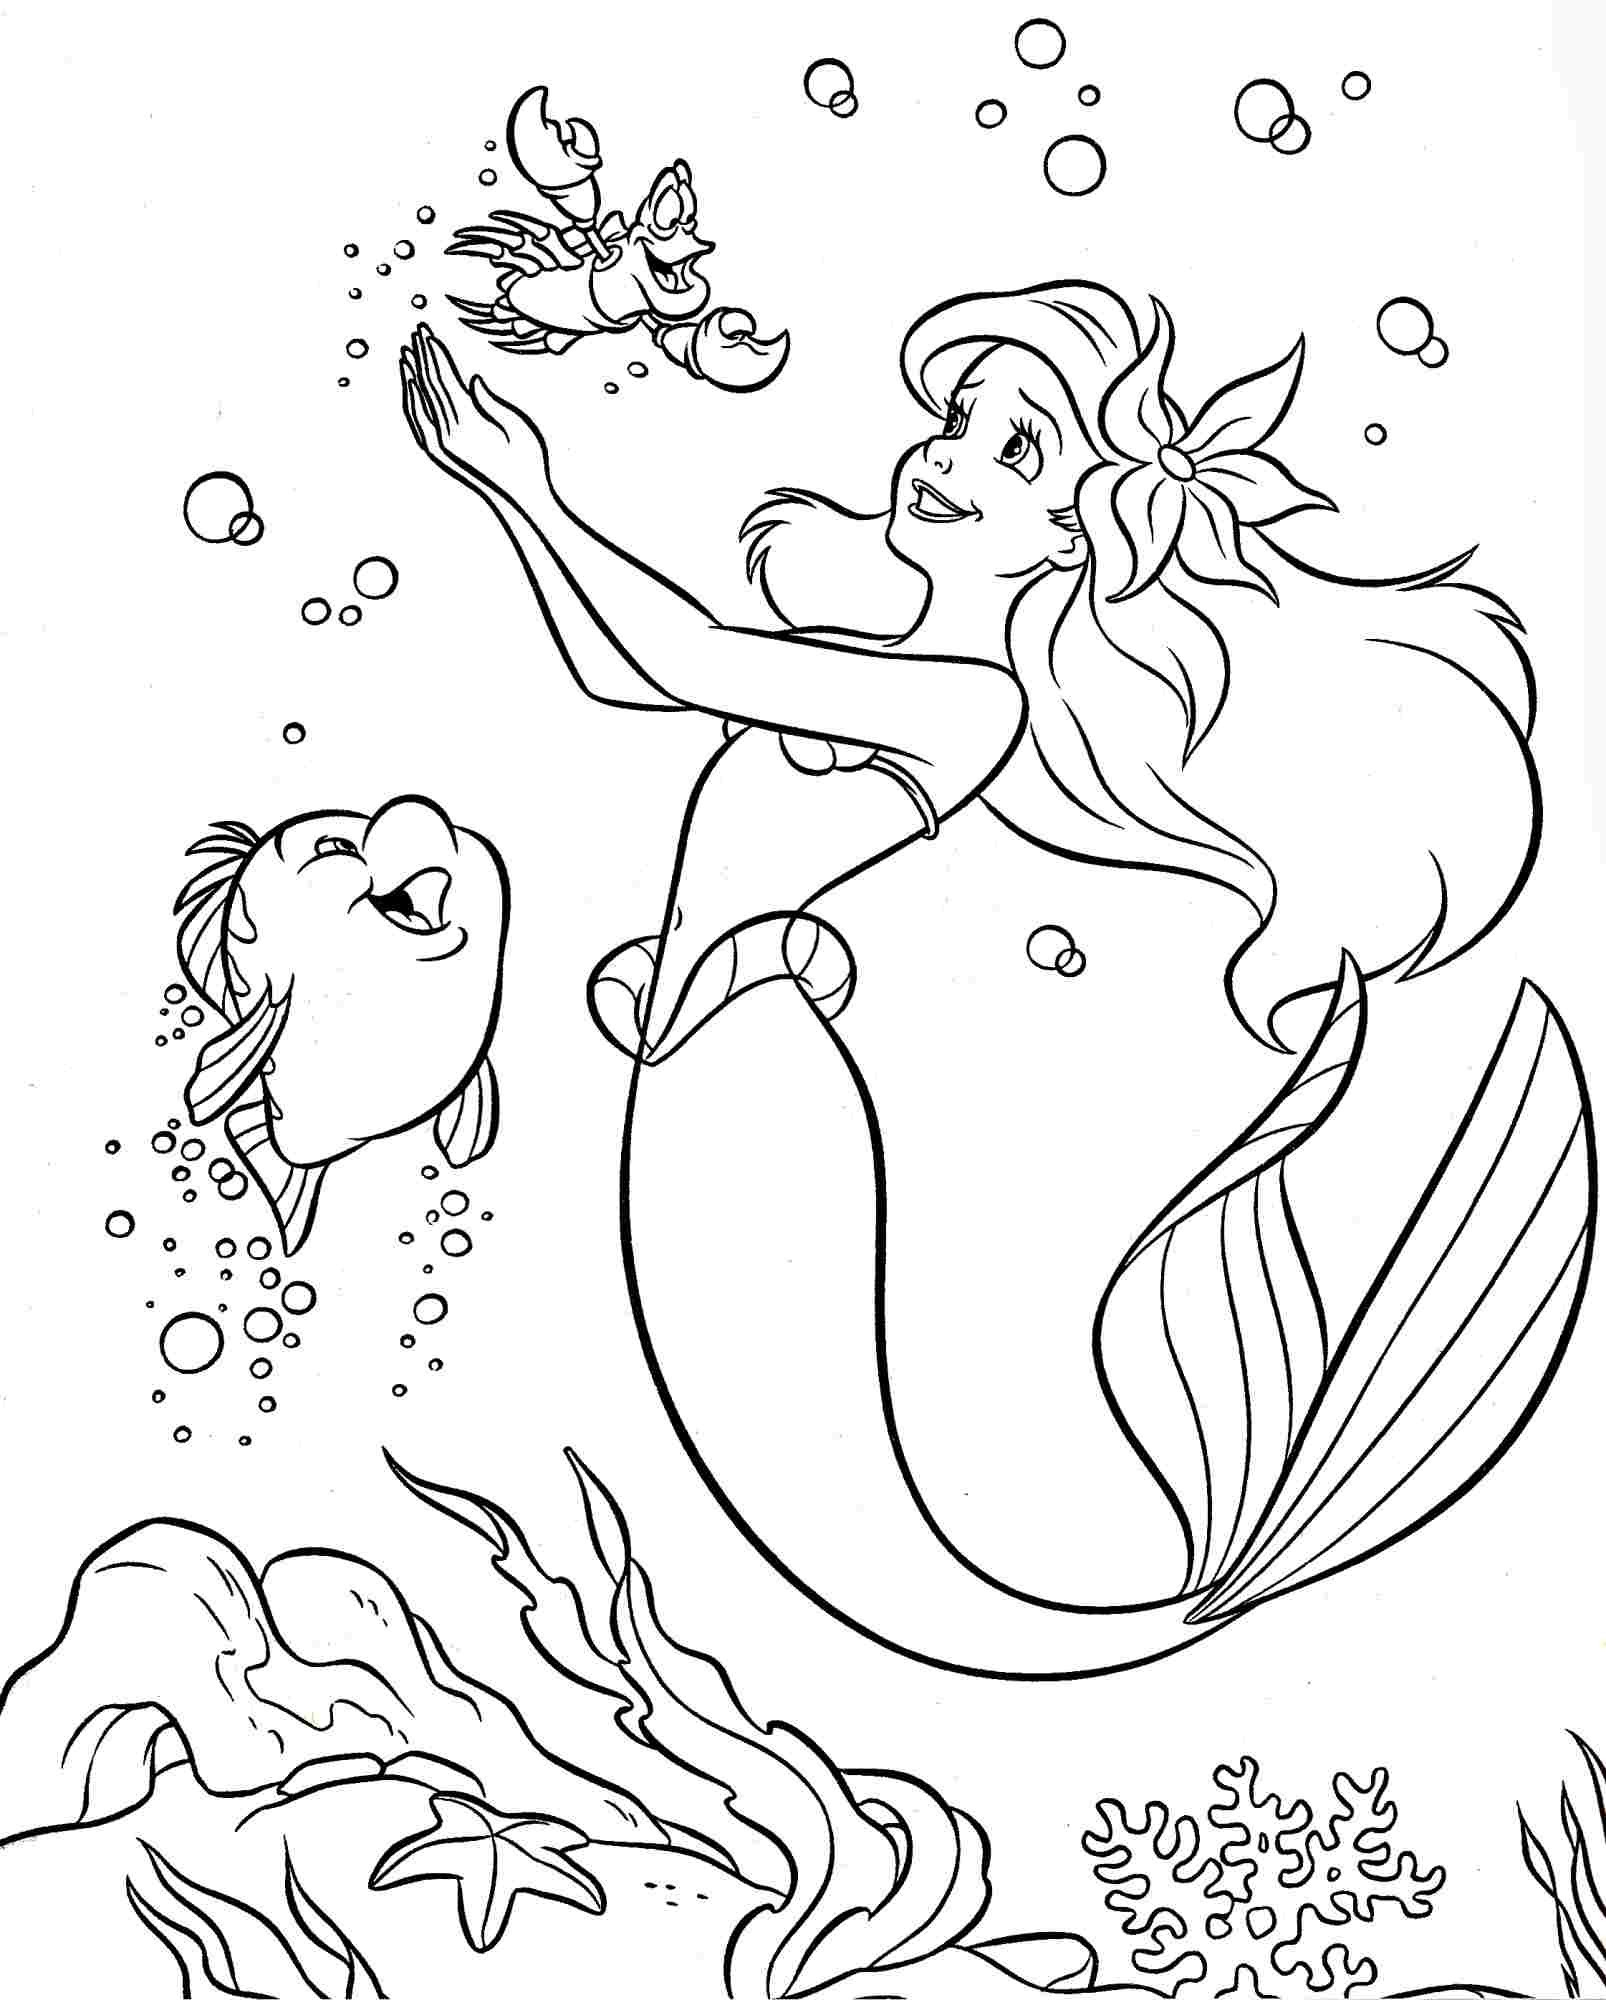 Coloring Pages Of Little Mermaid Coloring Book Disney Little Mermaid Coloring Pages Sea Creatures